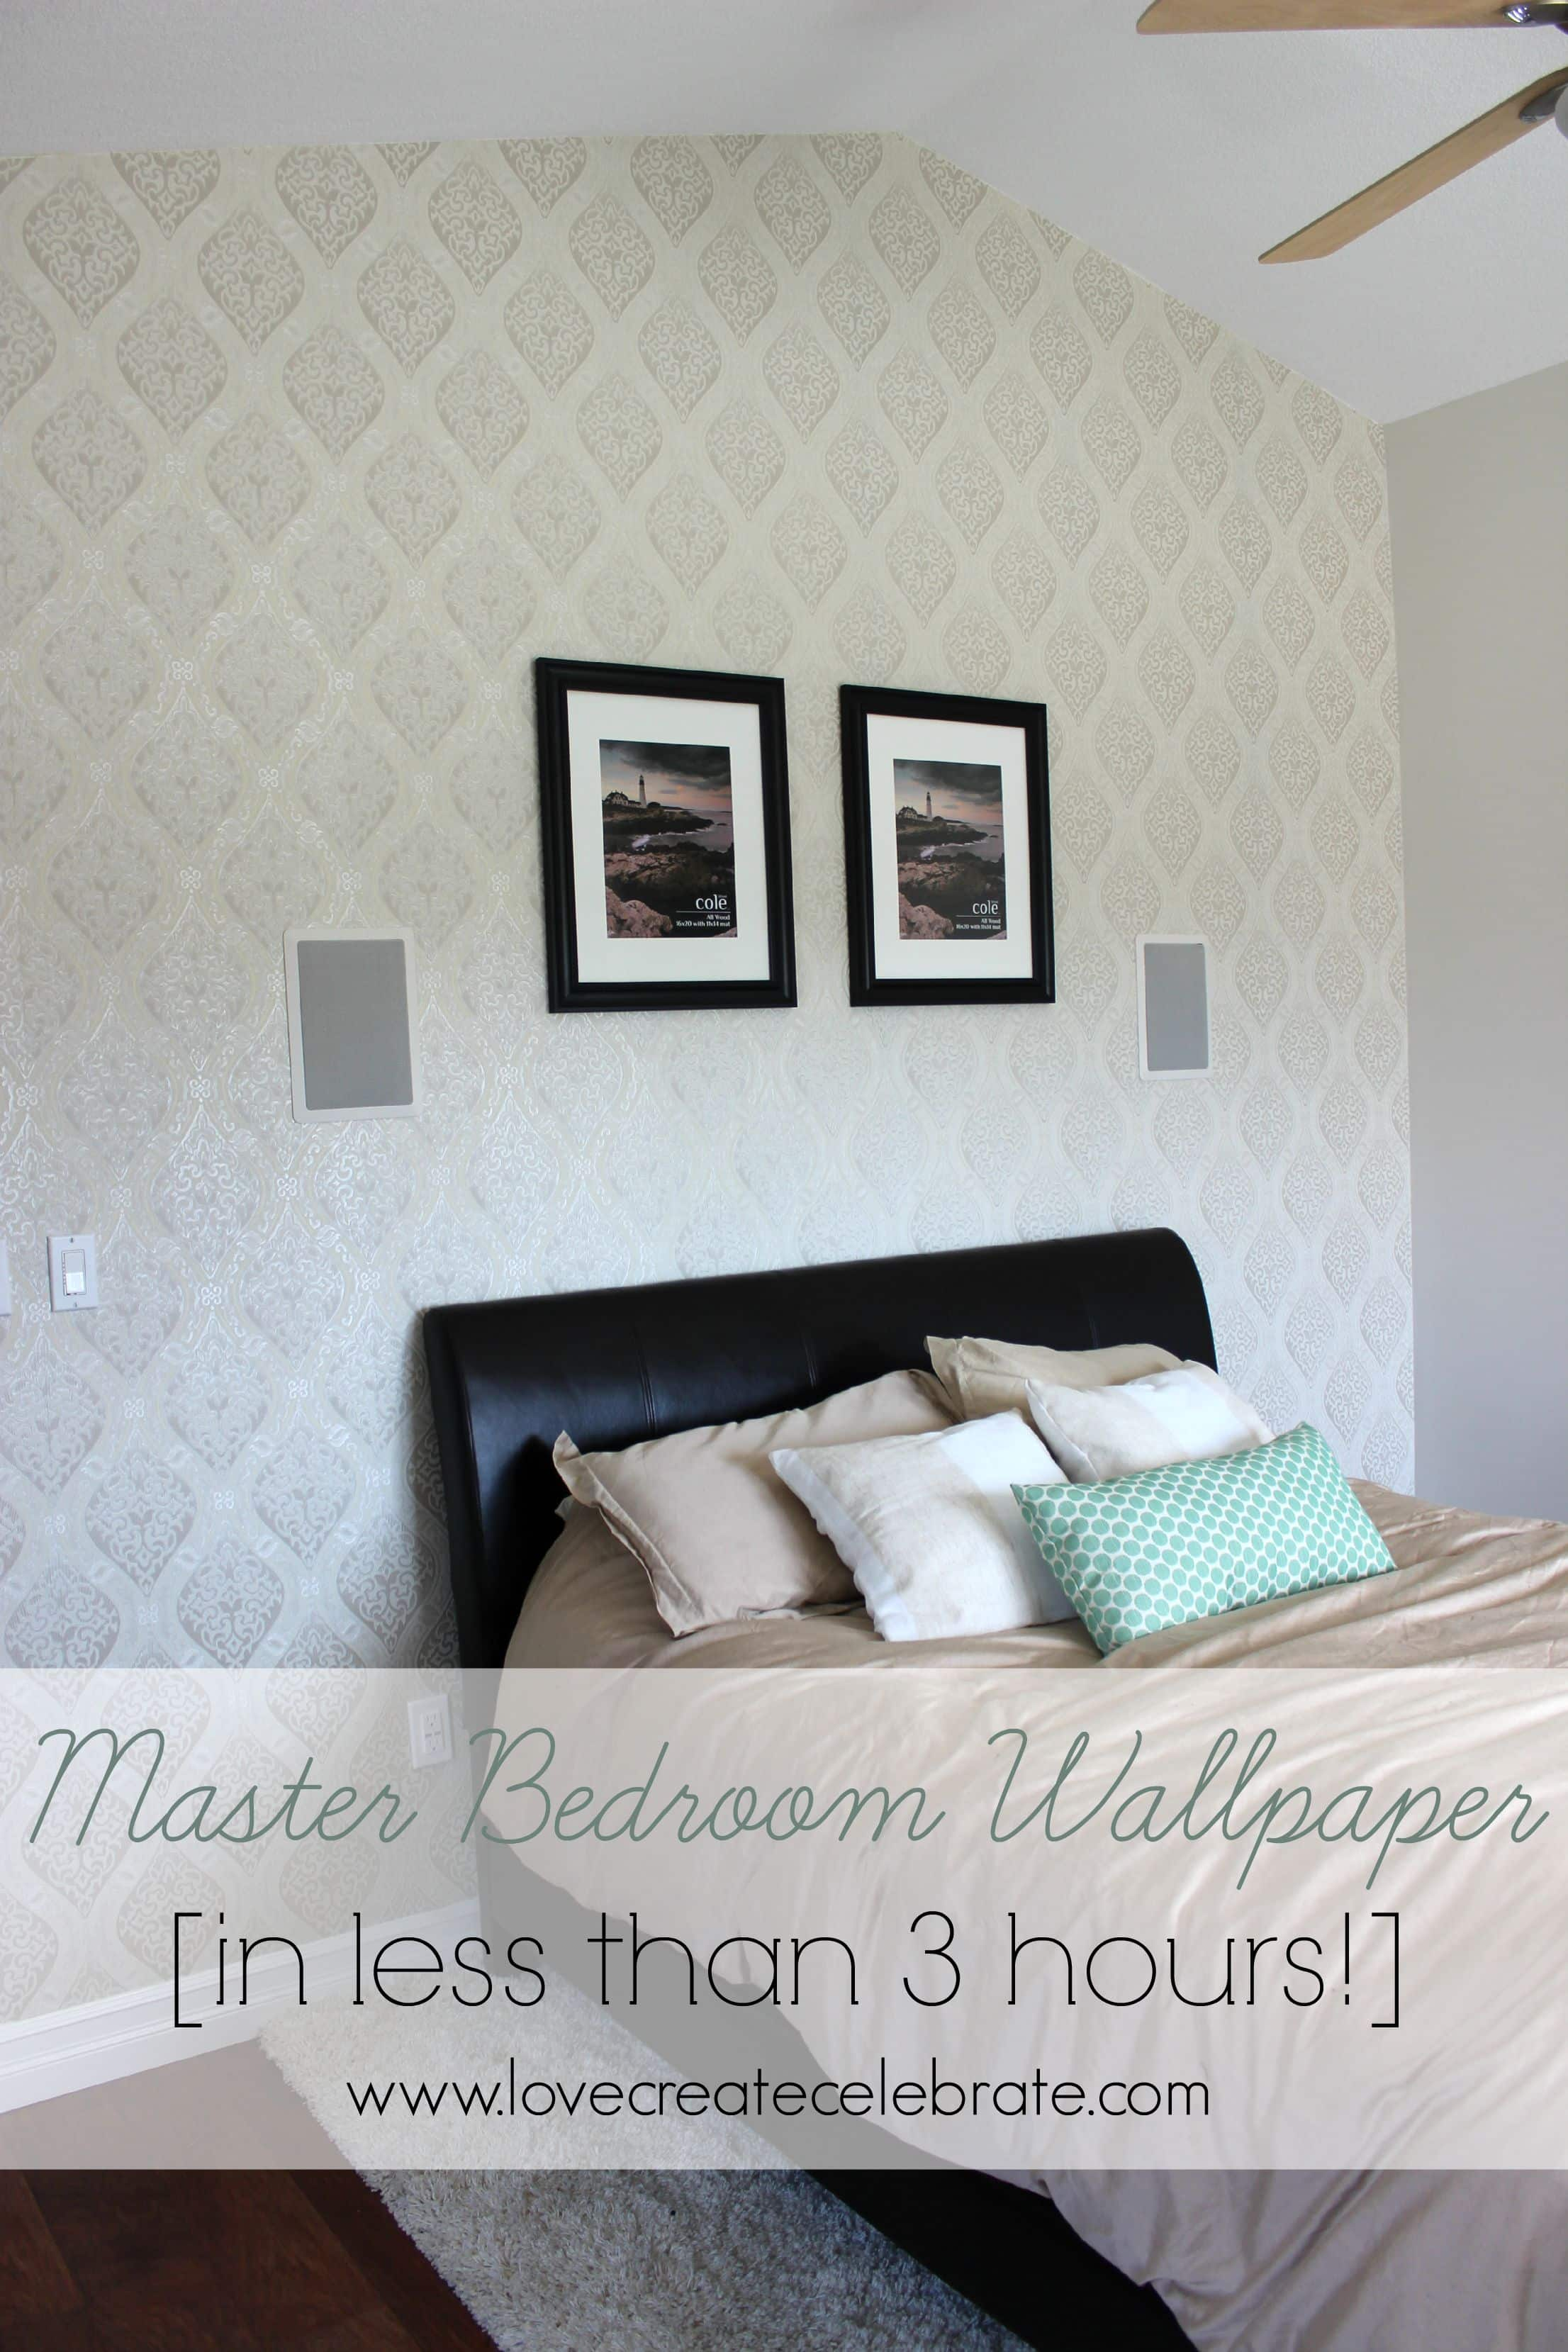 Master Bedroom Wallpaper Title